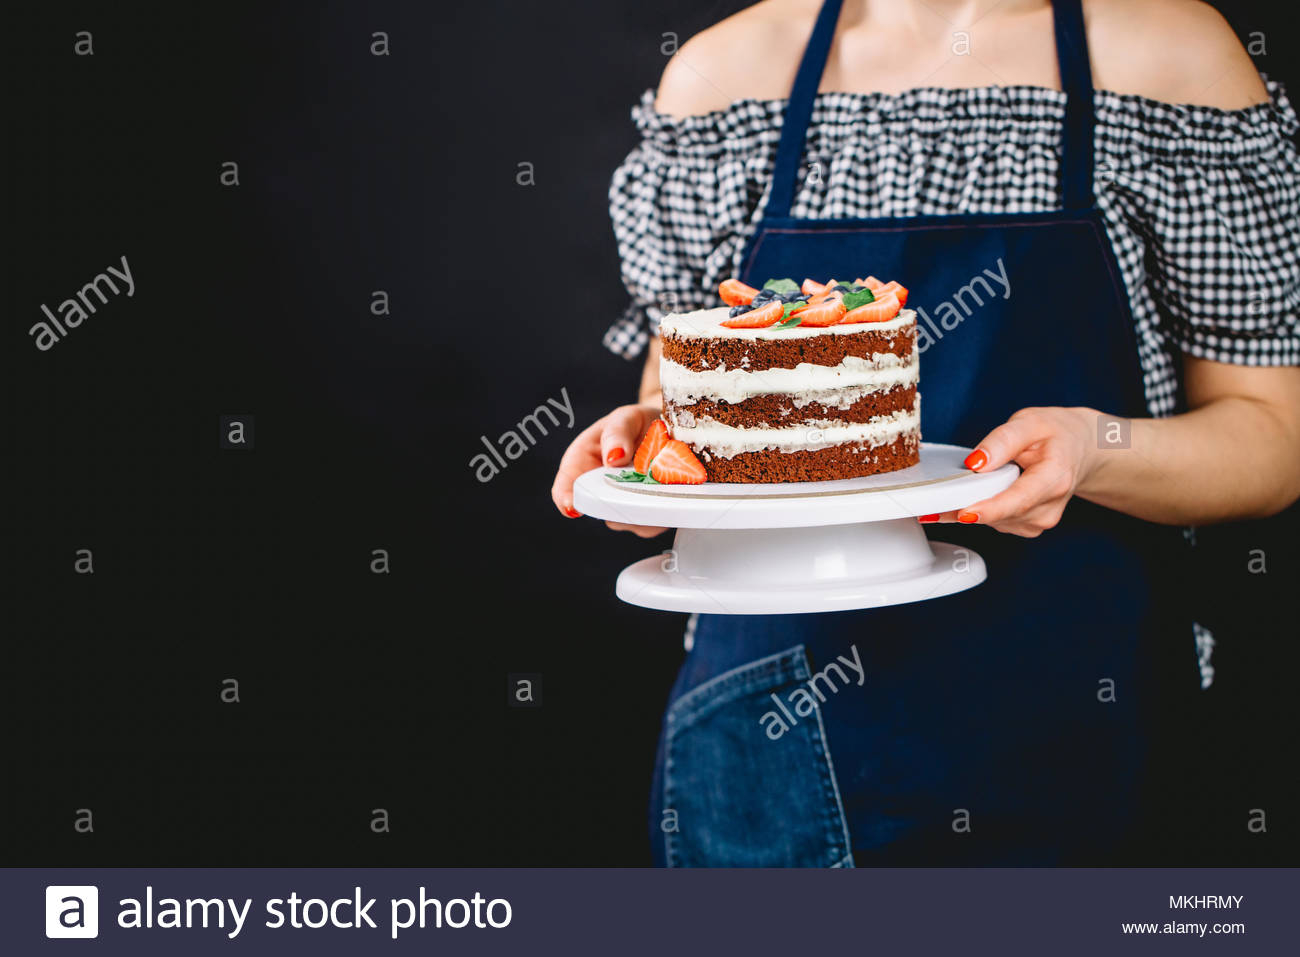 Woman Birthday Cake Young Woman In Denim Apron Holding Chocolate Birthday Cake With